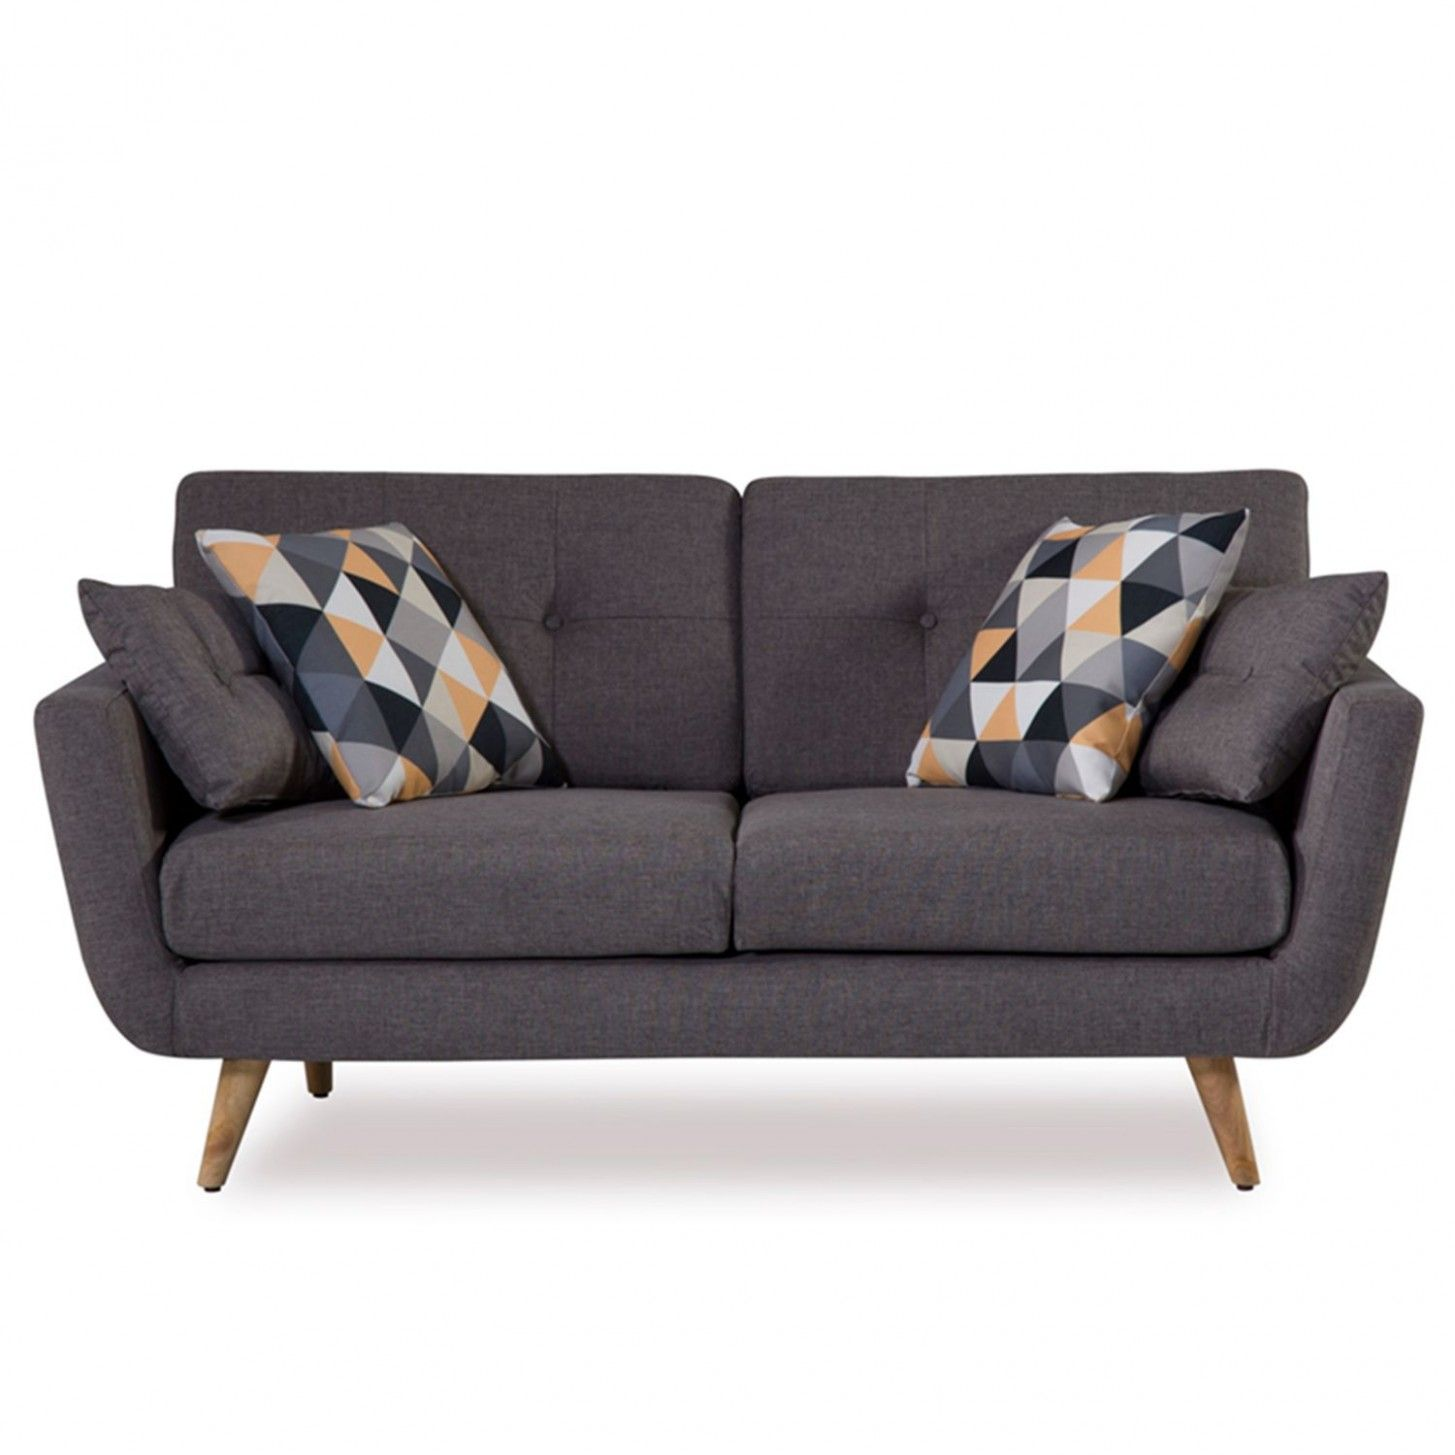 Bedroom Sofa Chair Zara di 4